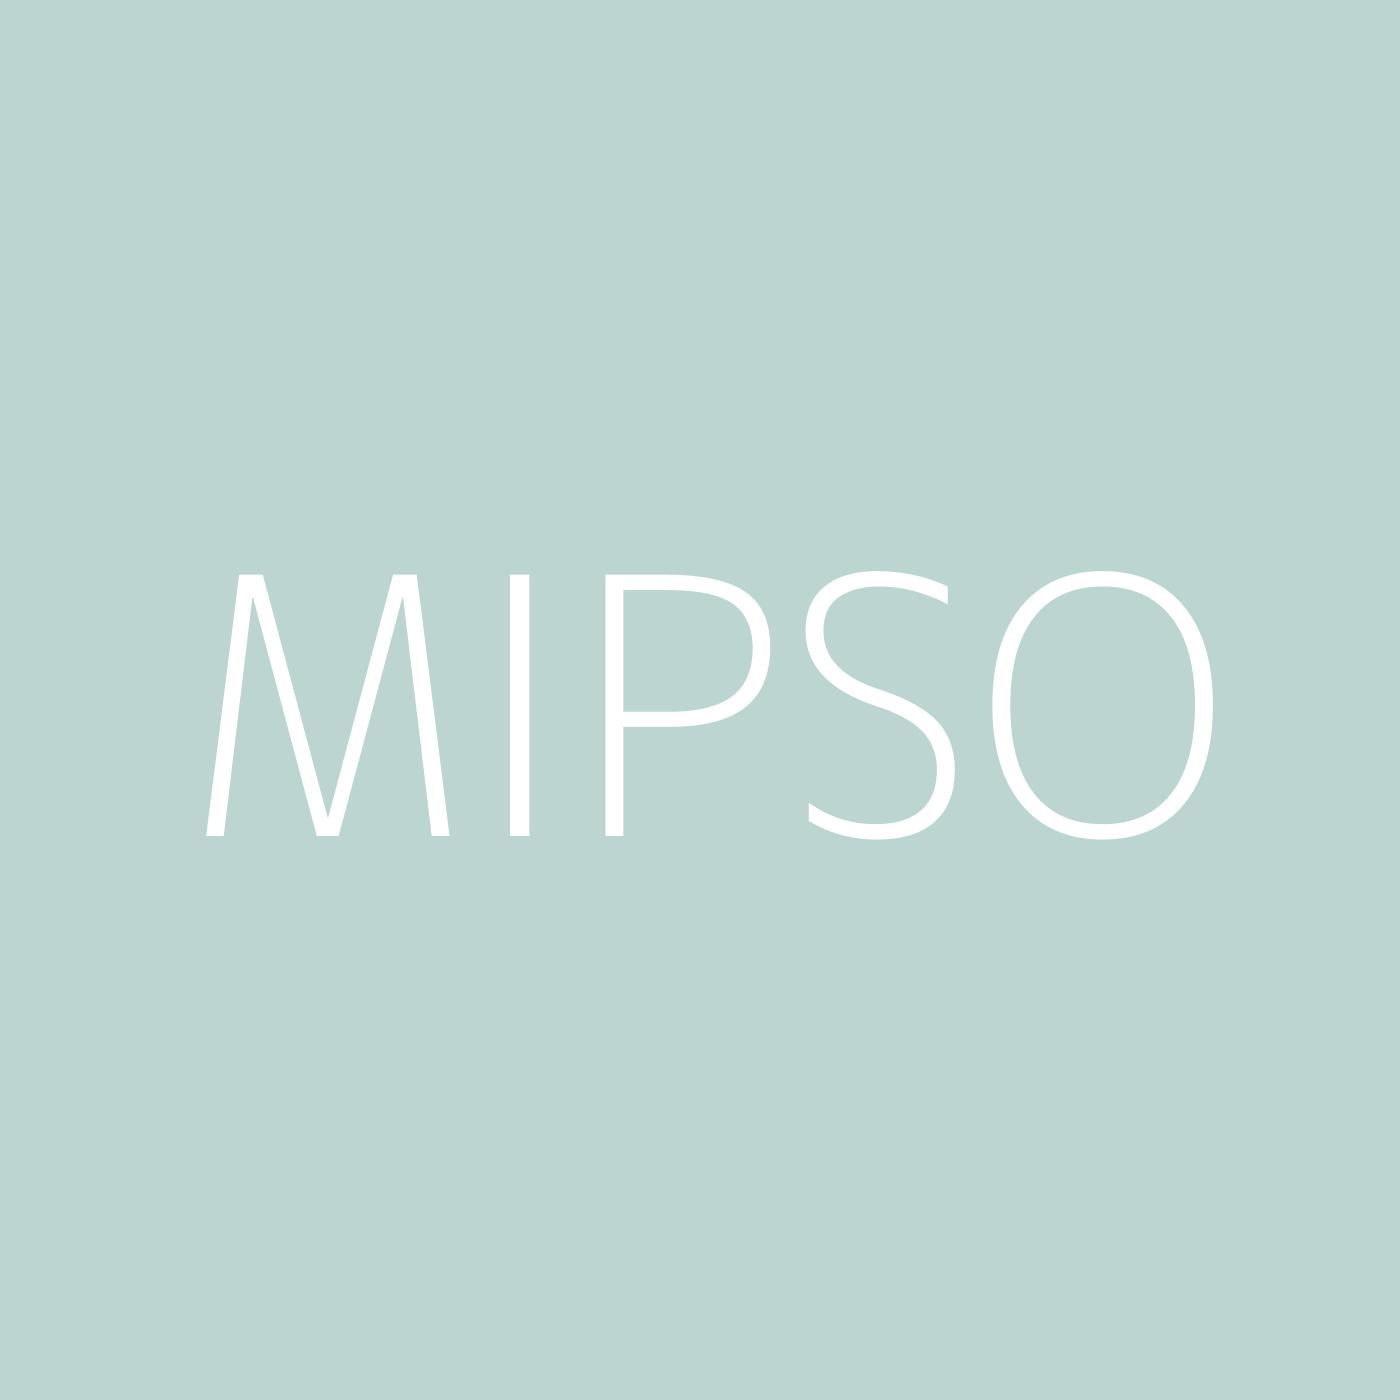 Mipso Playlist Artwork